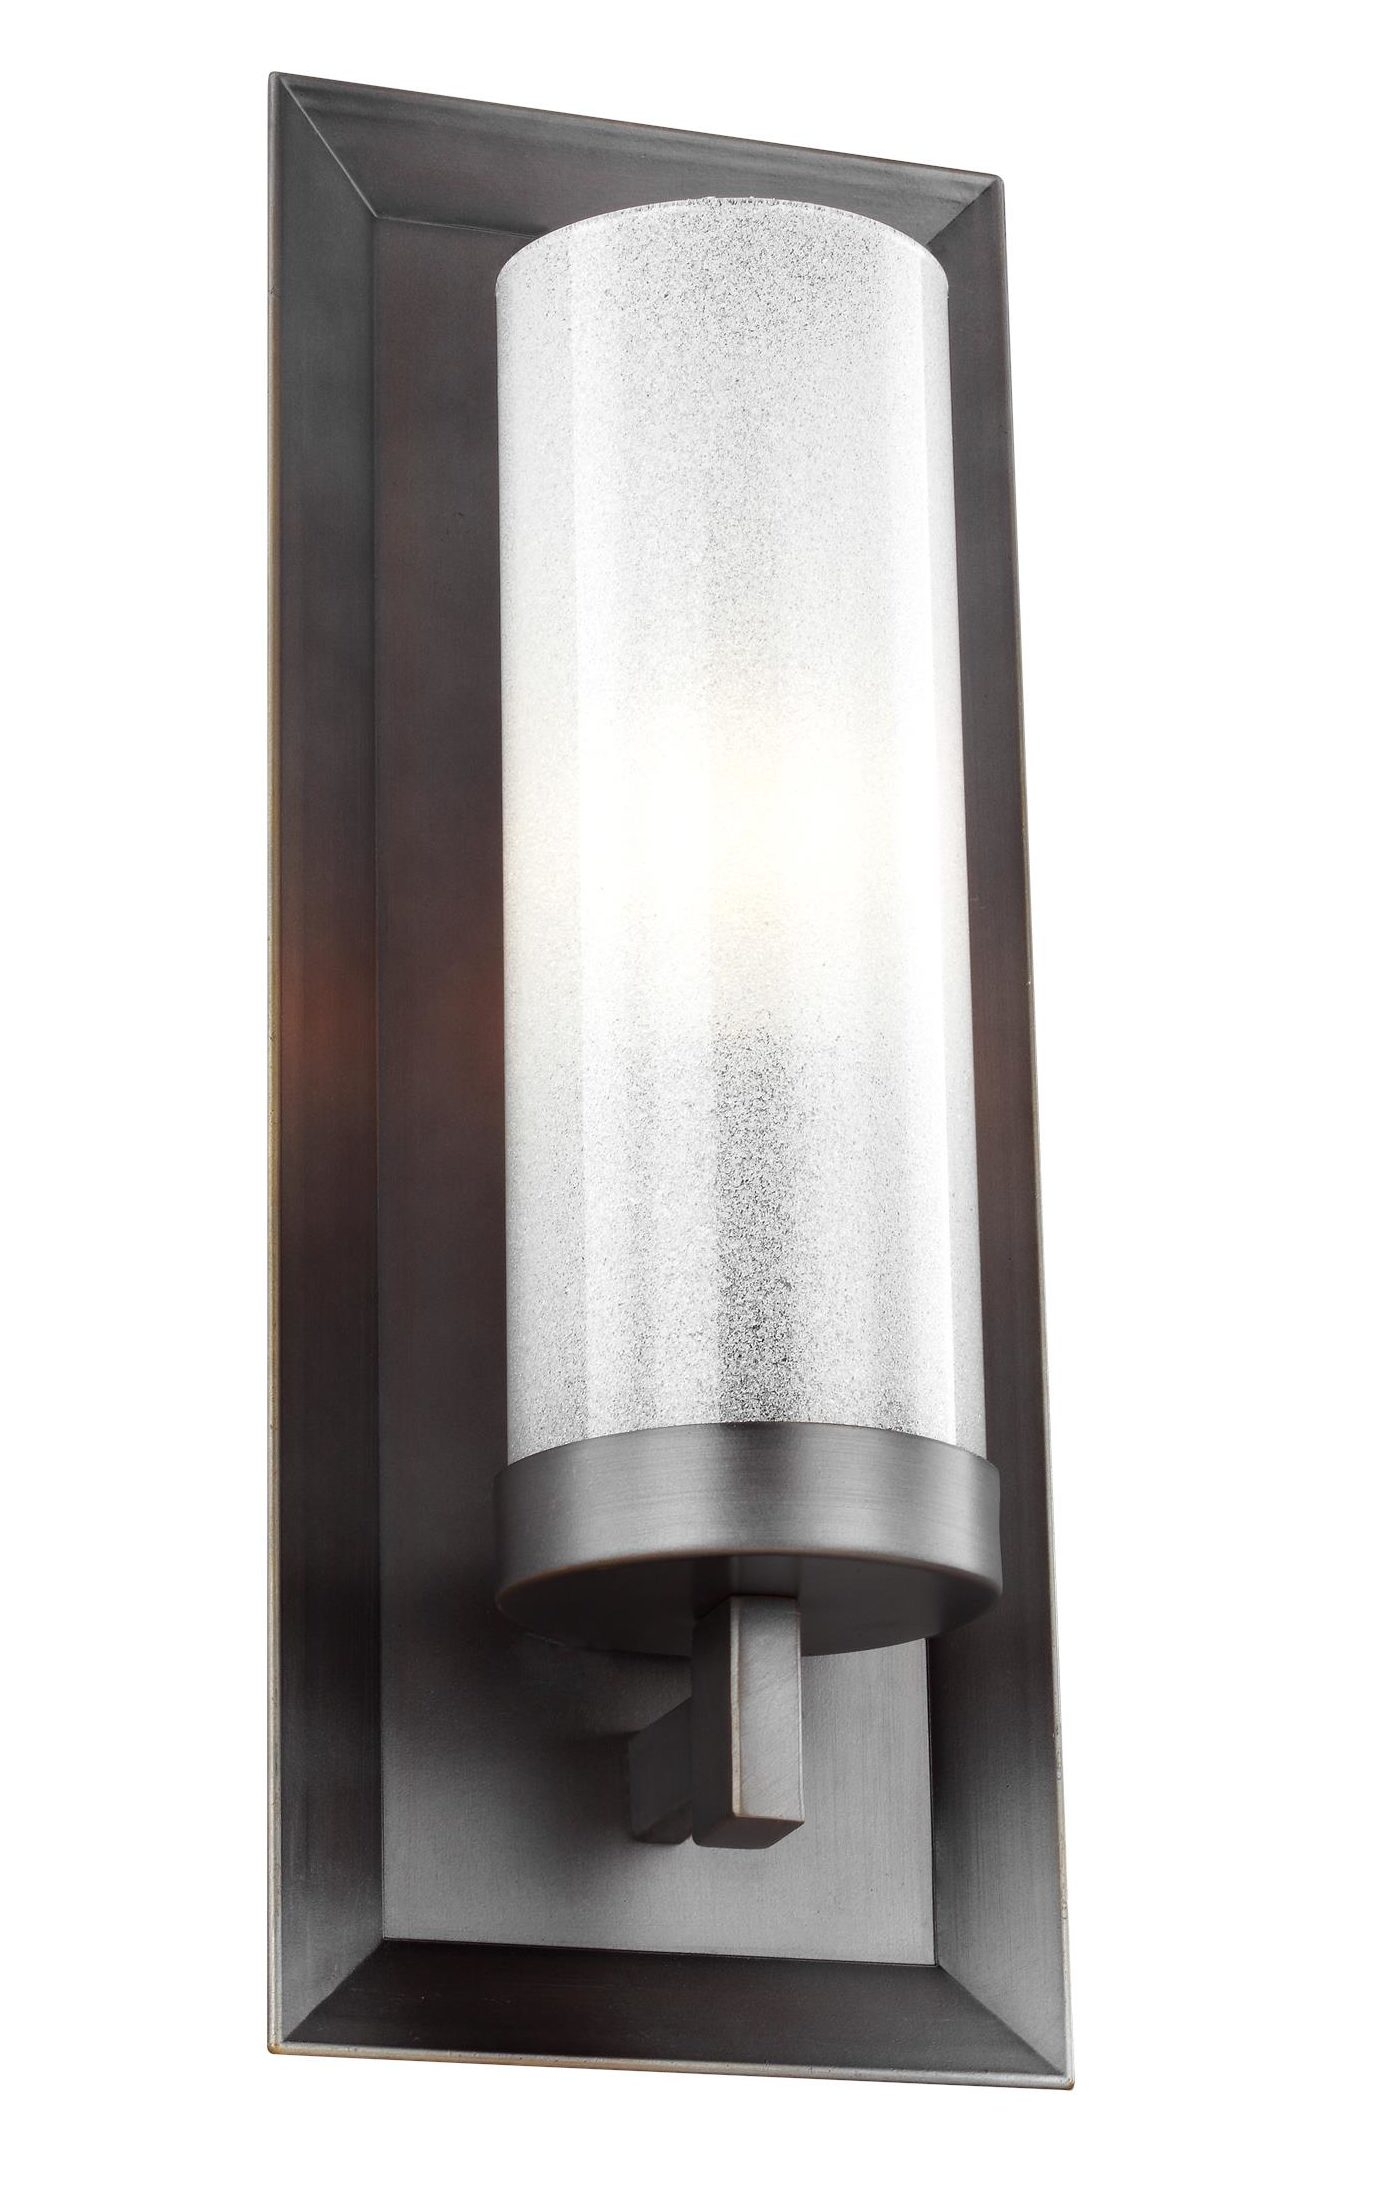 Wall sconce light source etc technical information amipublicfo Image collections